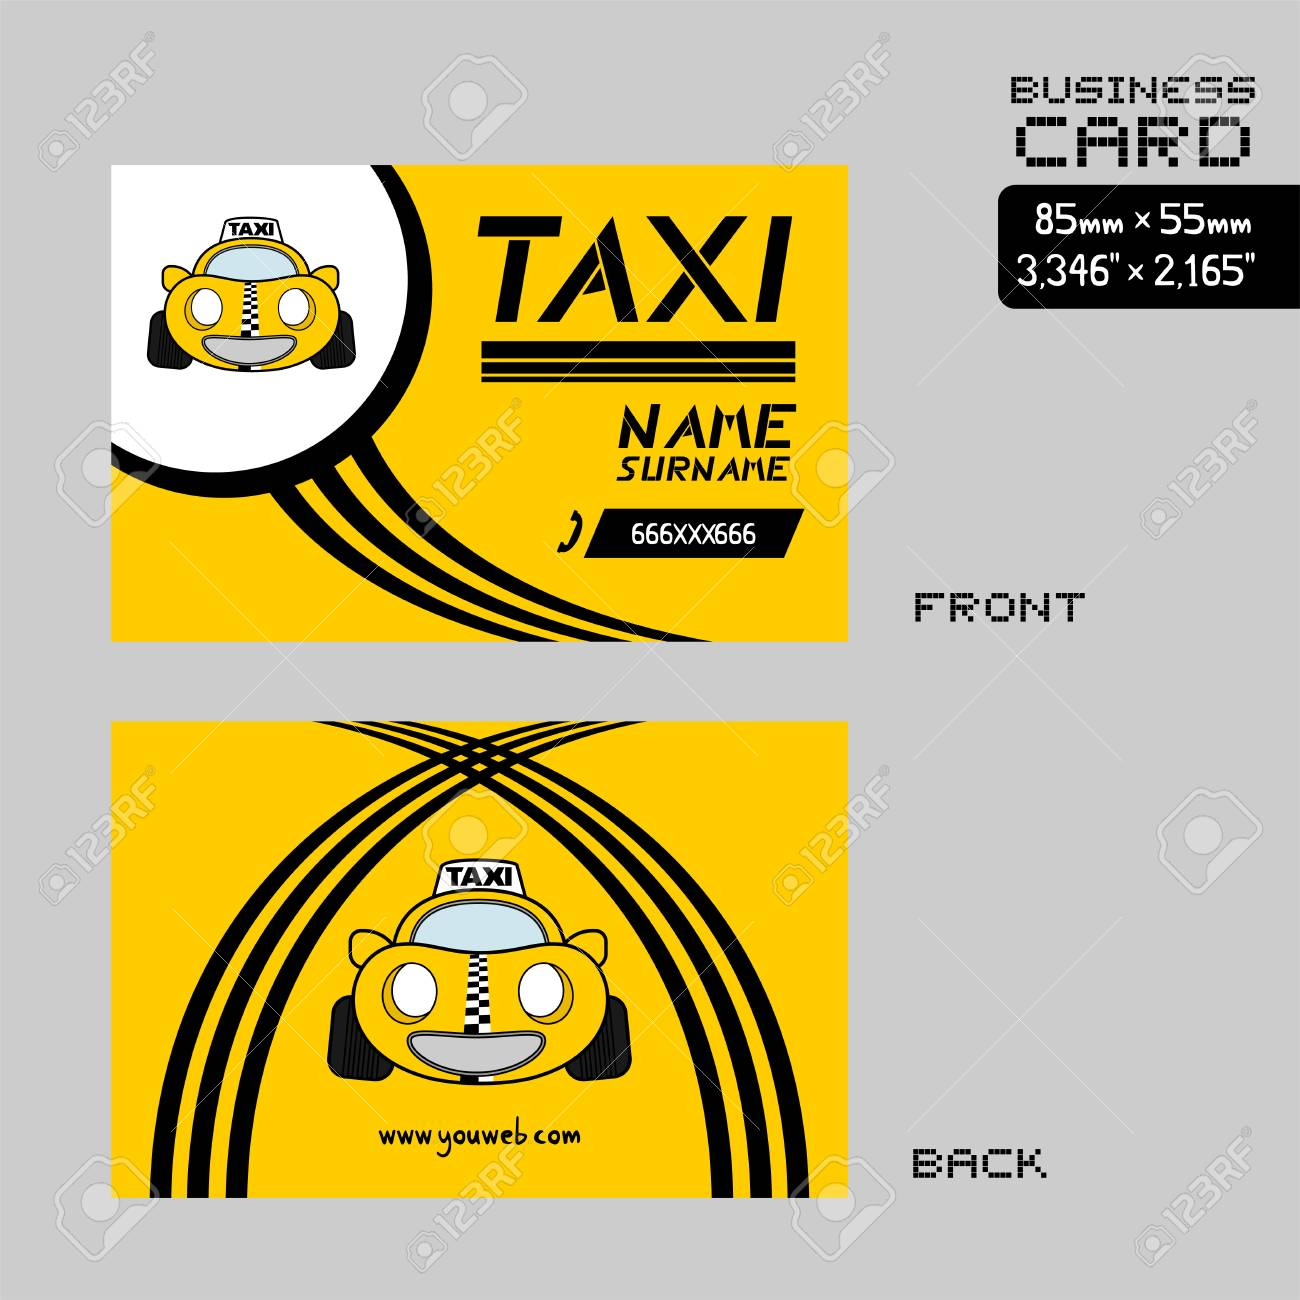 Taxi Business Card Royalty Free Cliparts, Vectors, And Stock ...